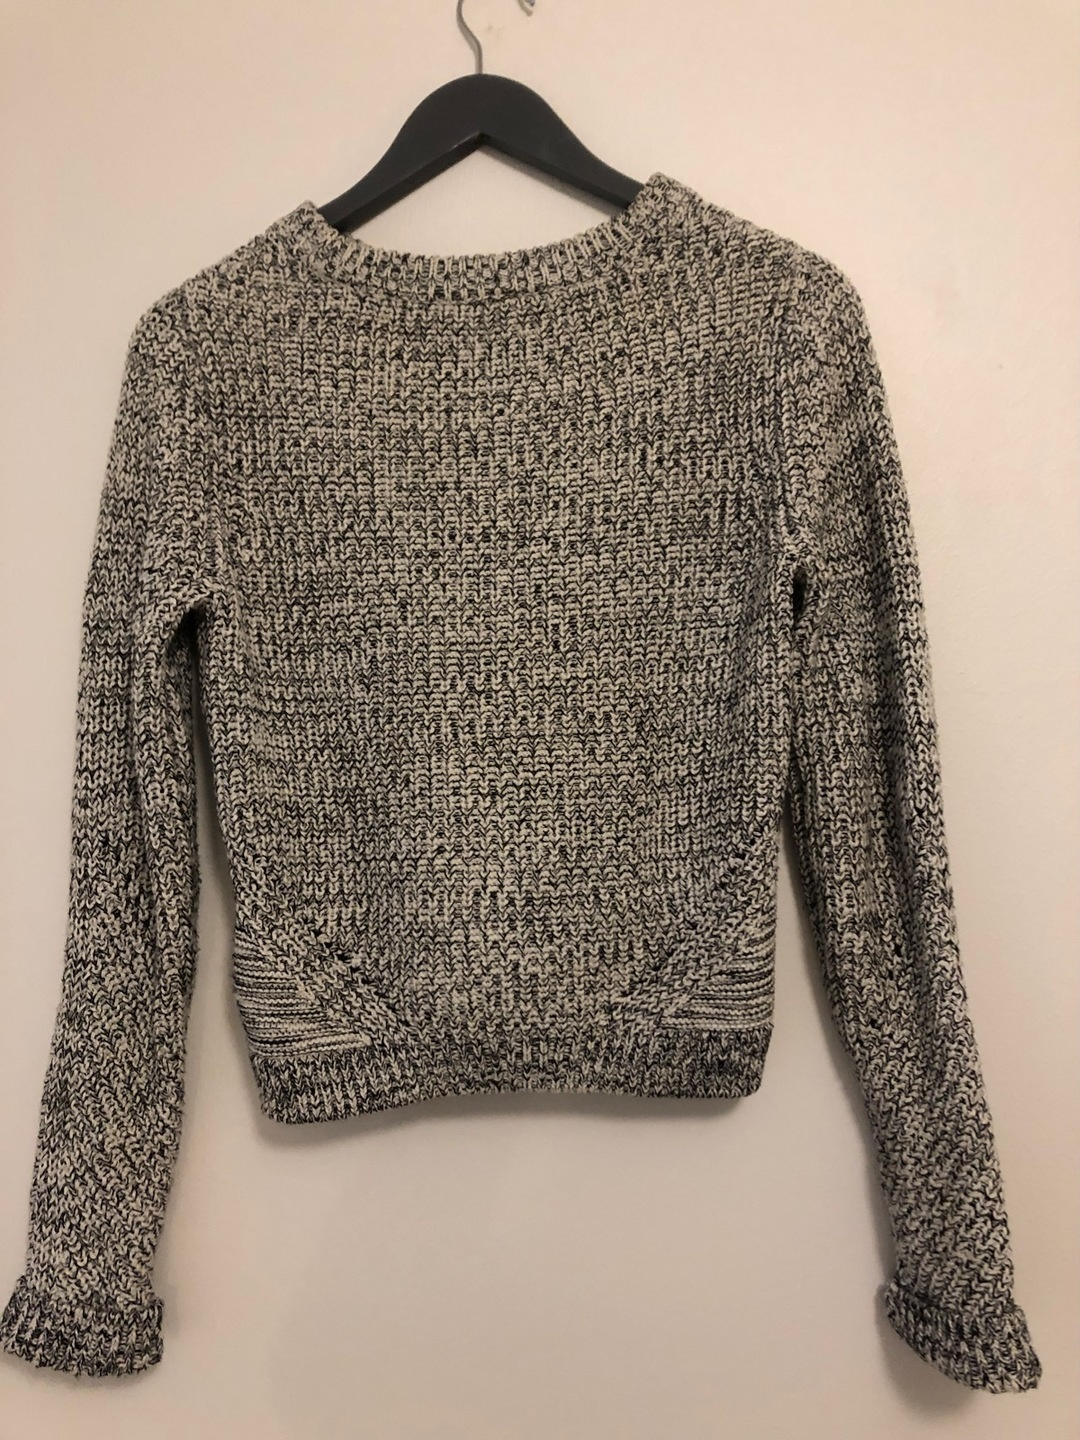 Women's jumpers & cardigans - H&M photo 3